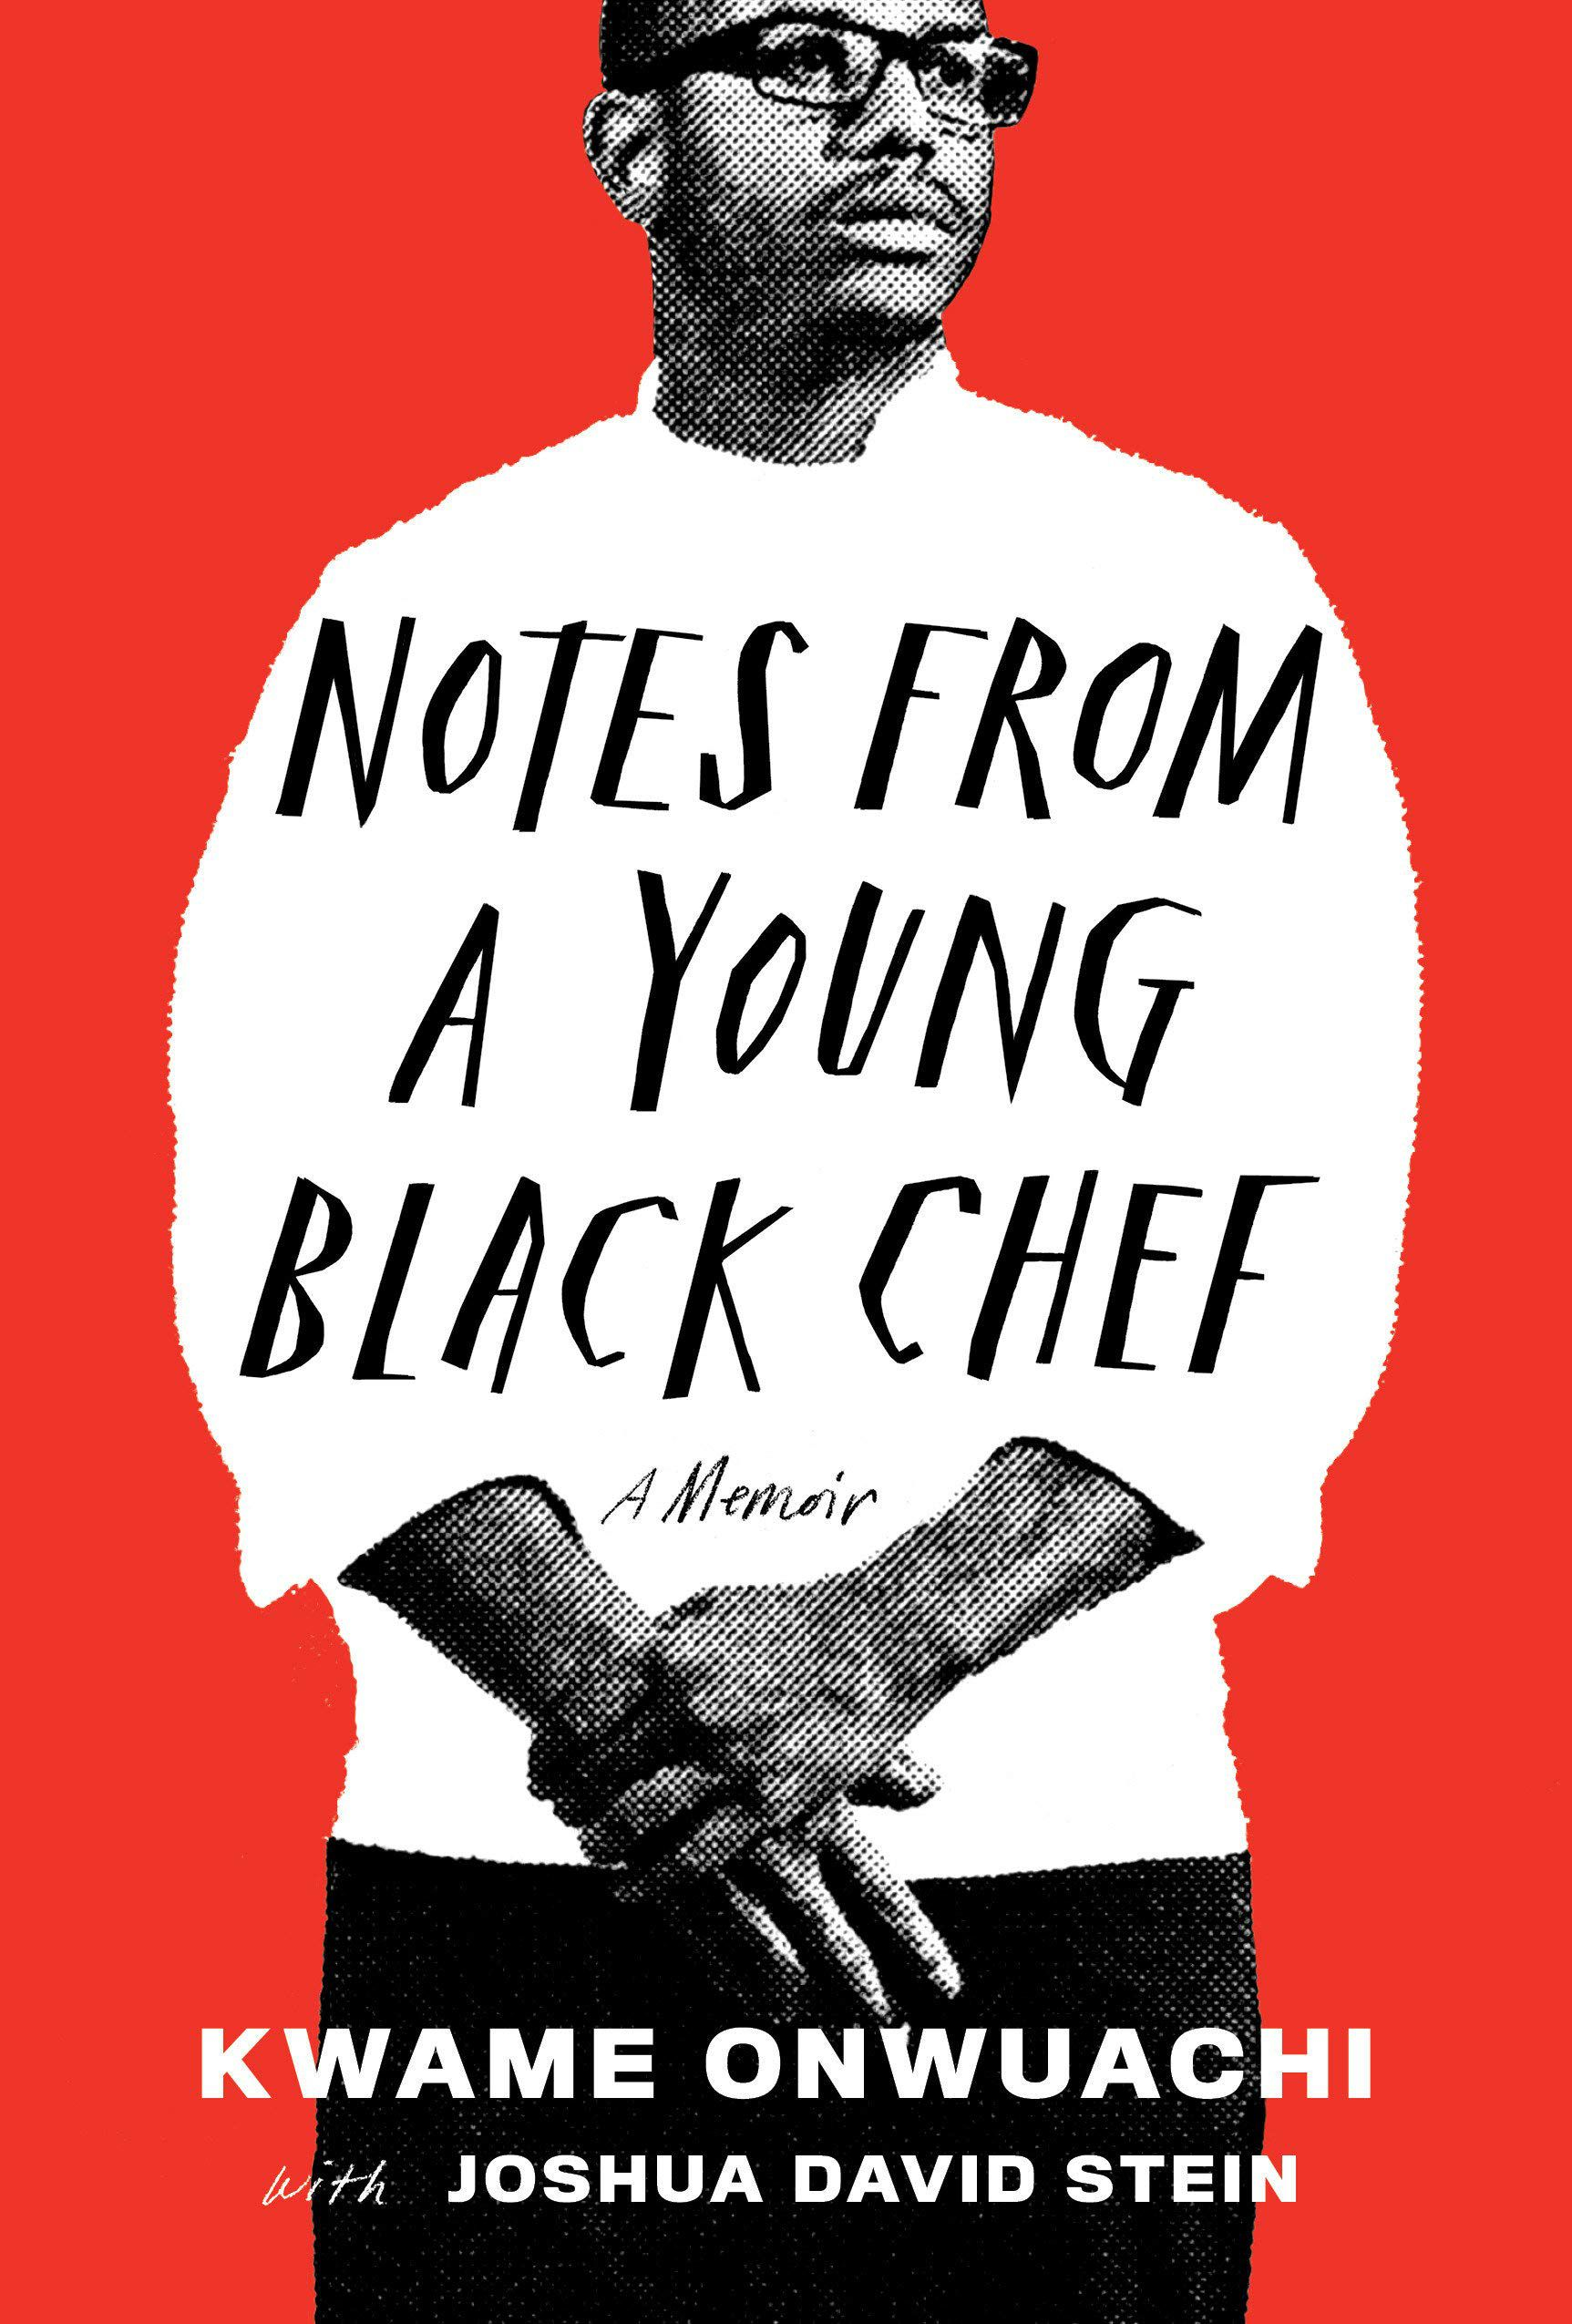 Notes from a Young Black Chef: A Memoir by Kwame Onwuachi book cover